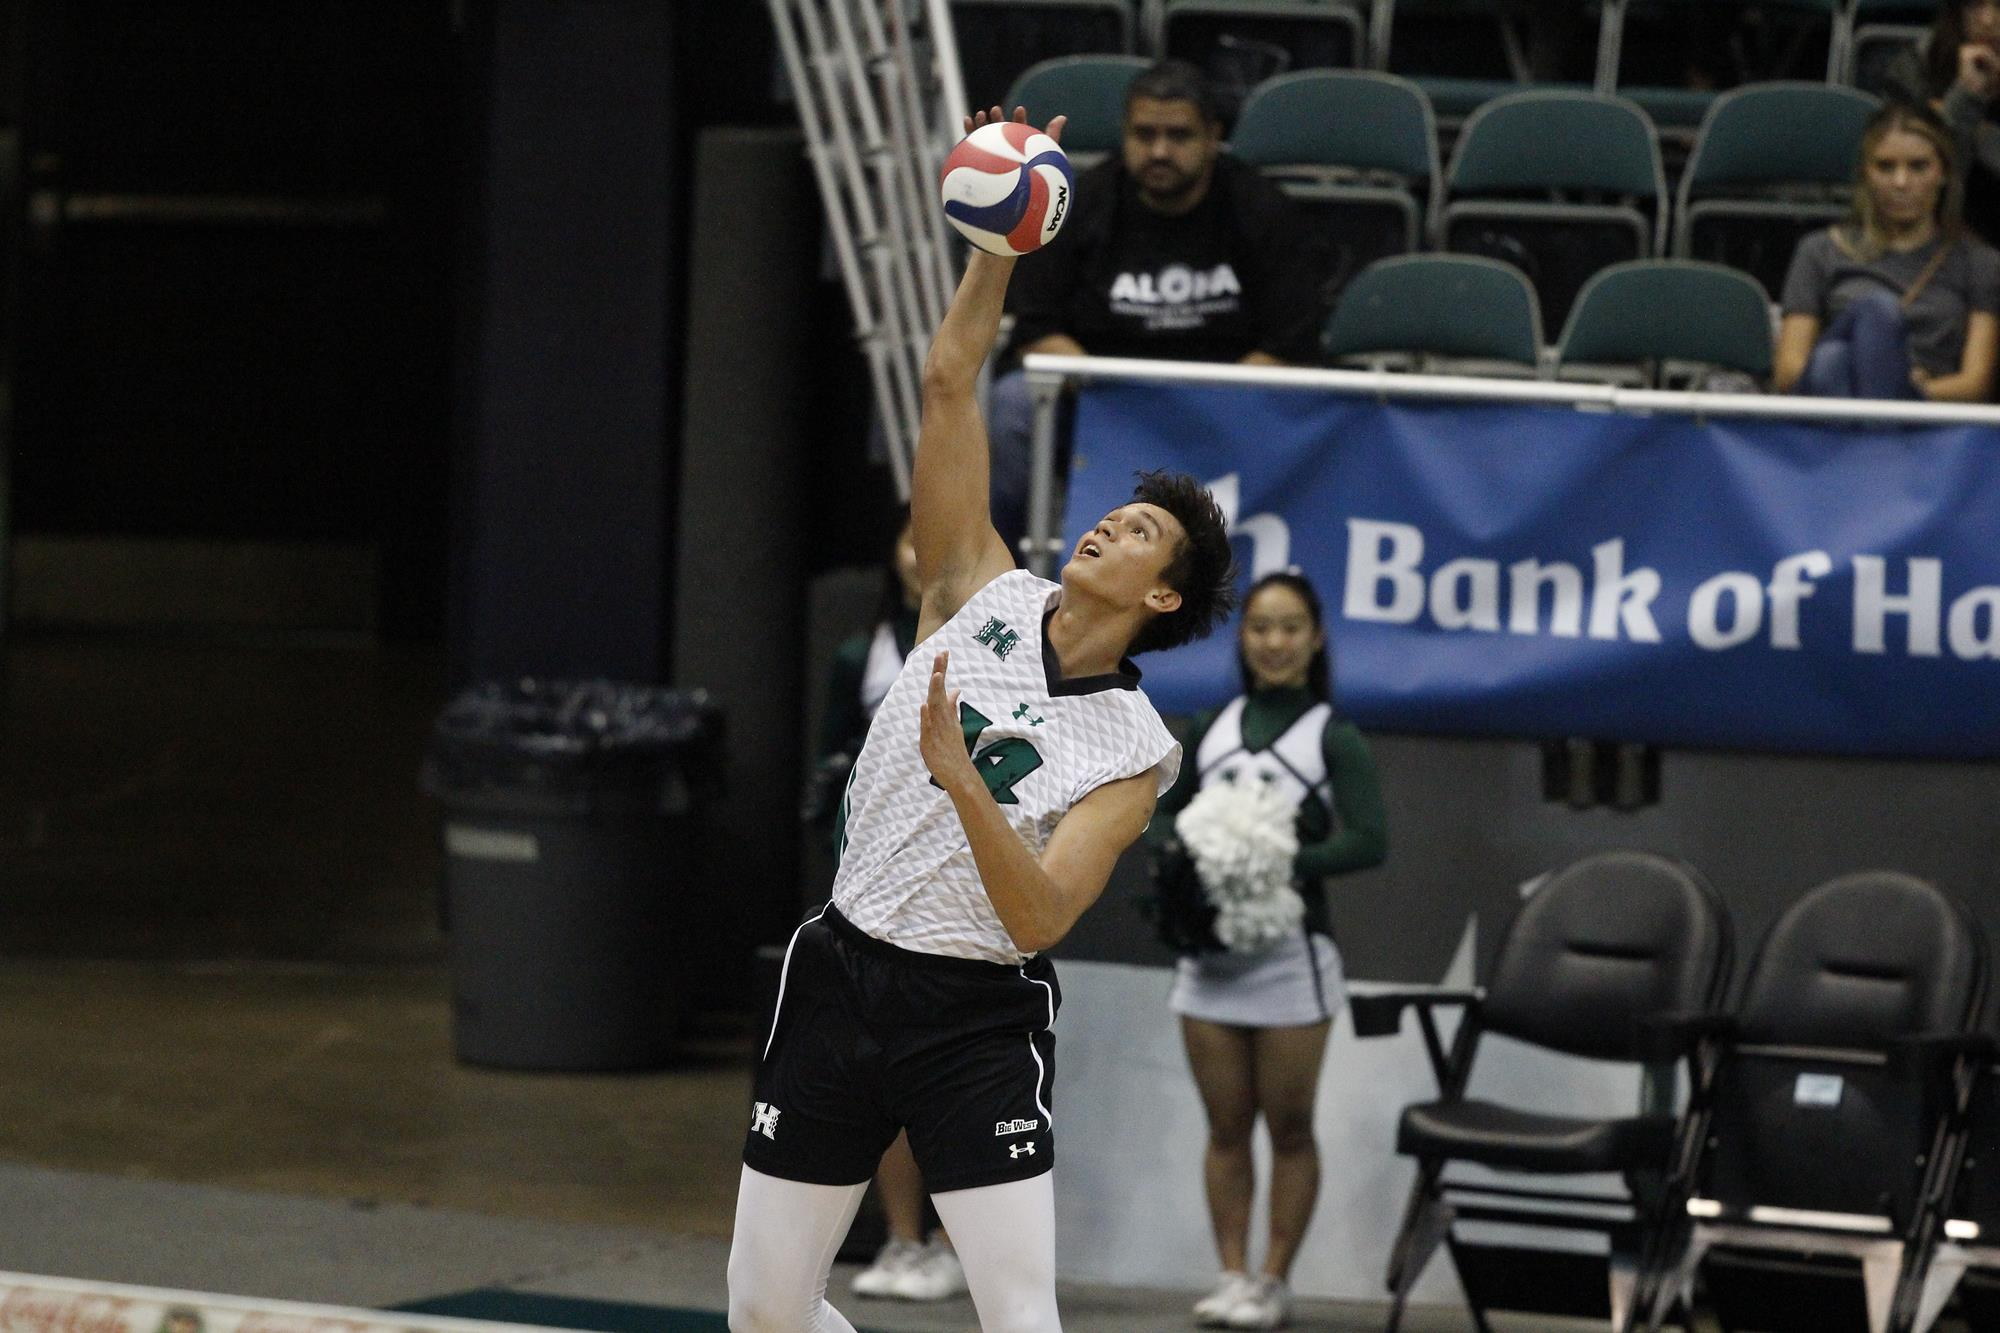 Alaka I Todd Men S Volleyball University Of Hawai I At Manoa Athletics